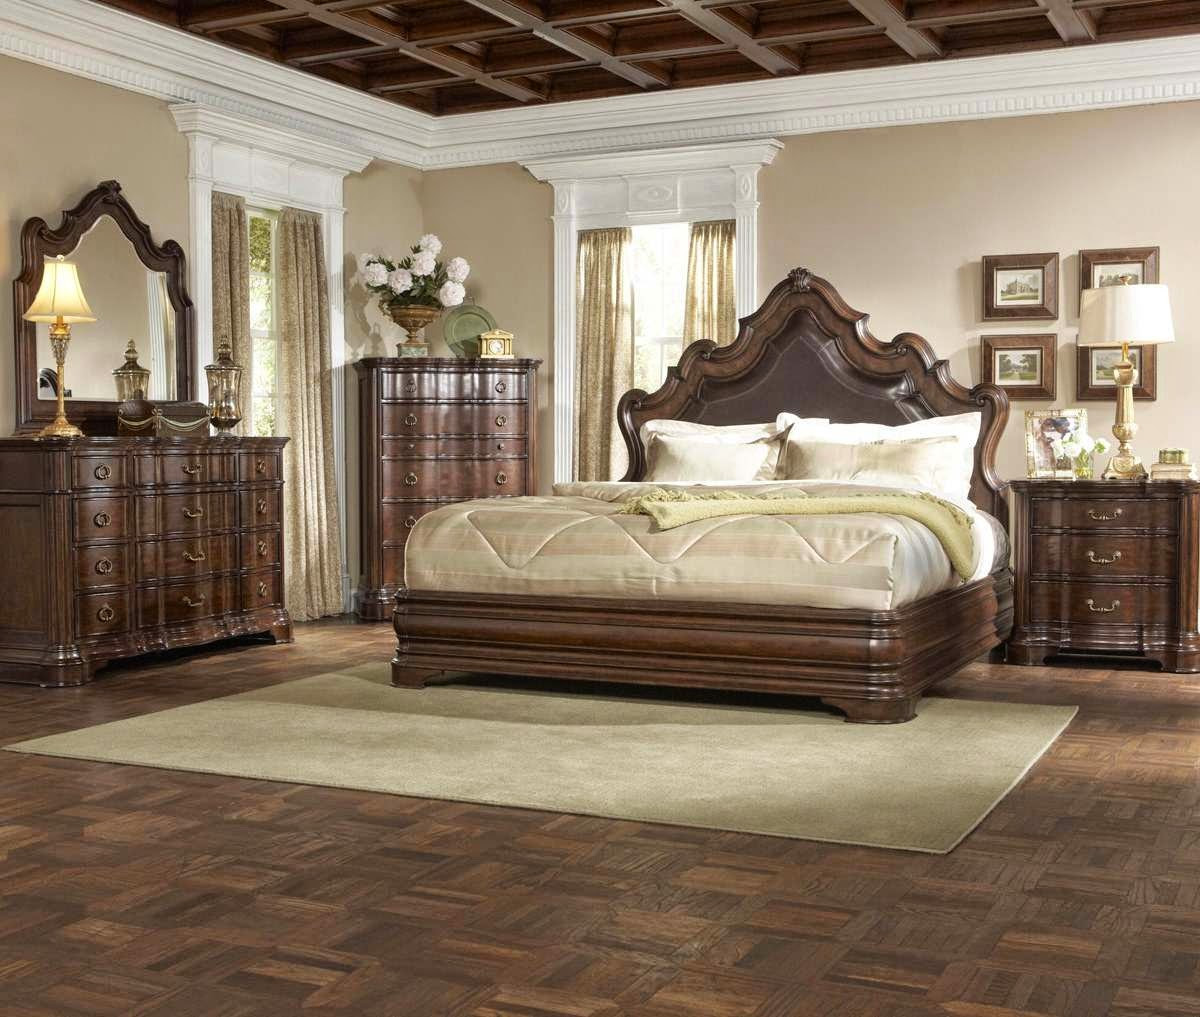 Best ideas about Bedroom Furniture Ideas . Save or Pin Mirror Bedroom Furniture Ideas 2014 Home Design Now.